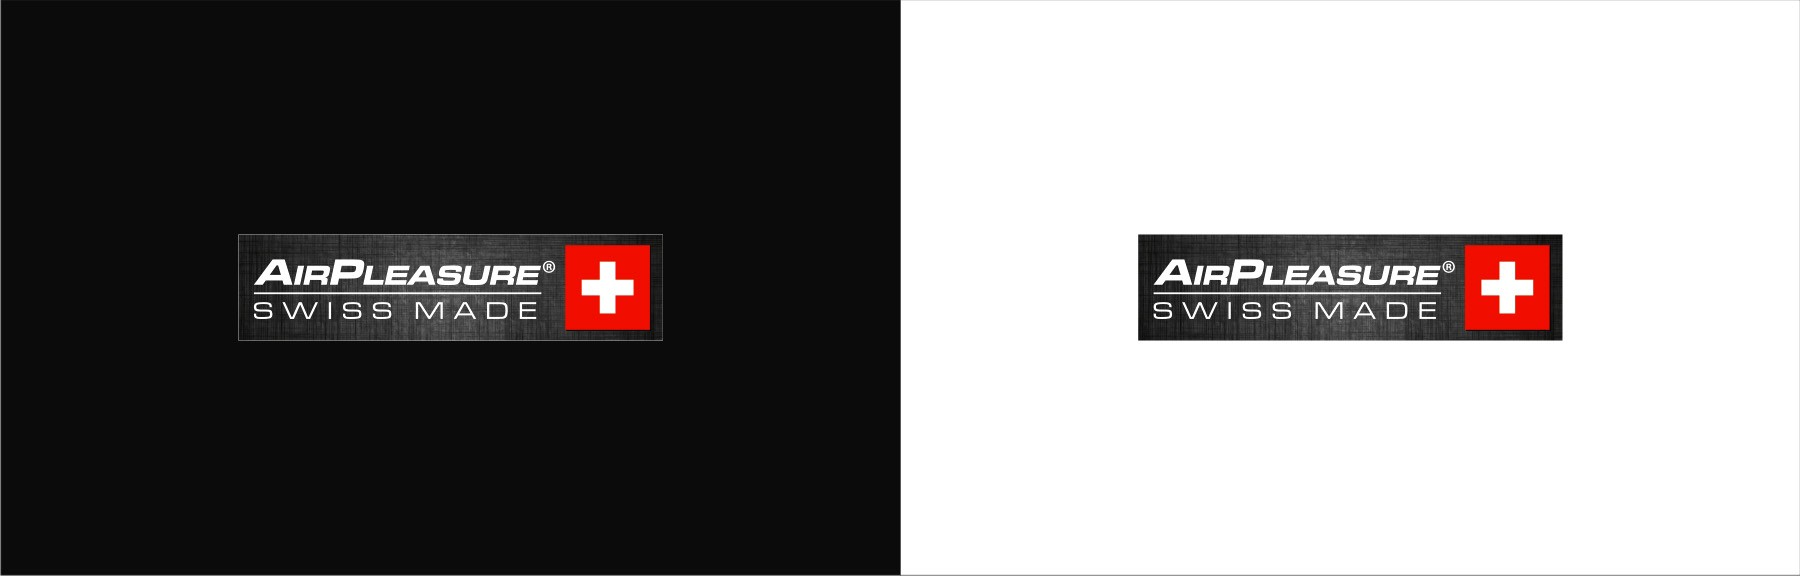 swiss made sticker for AirPleasure Clothes